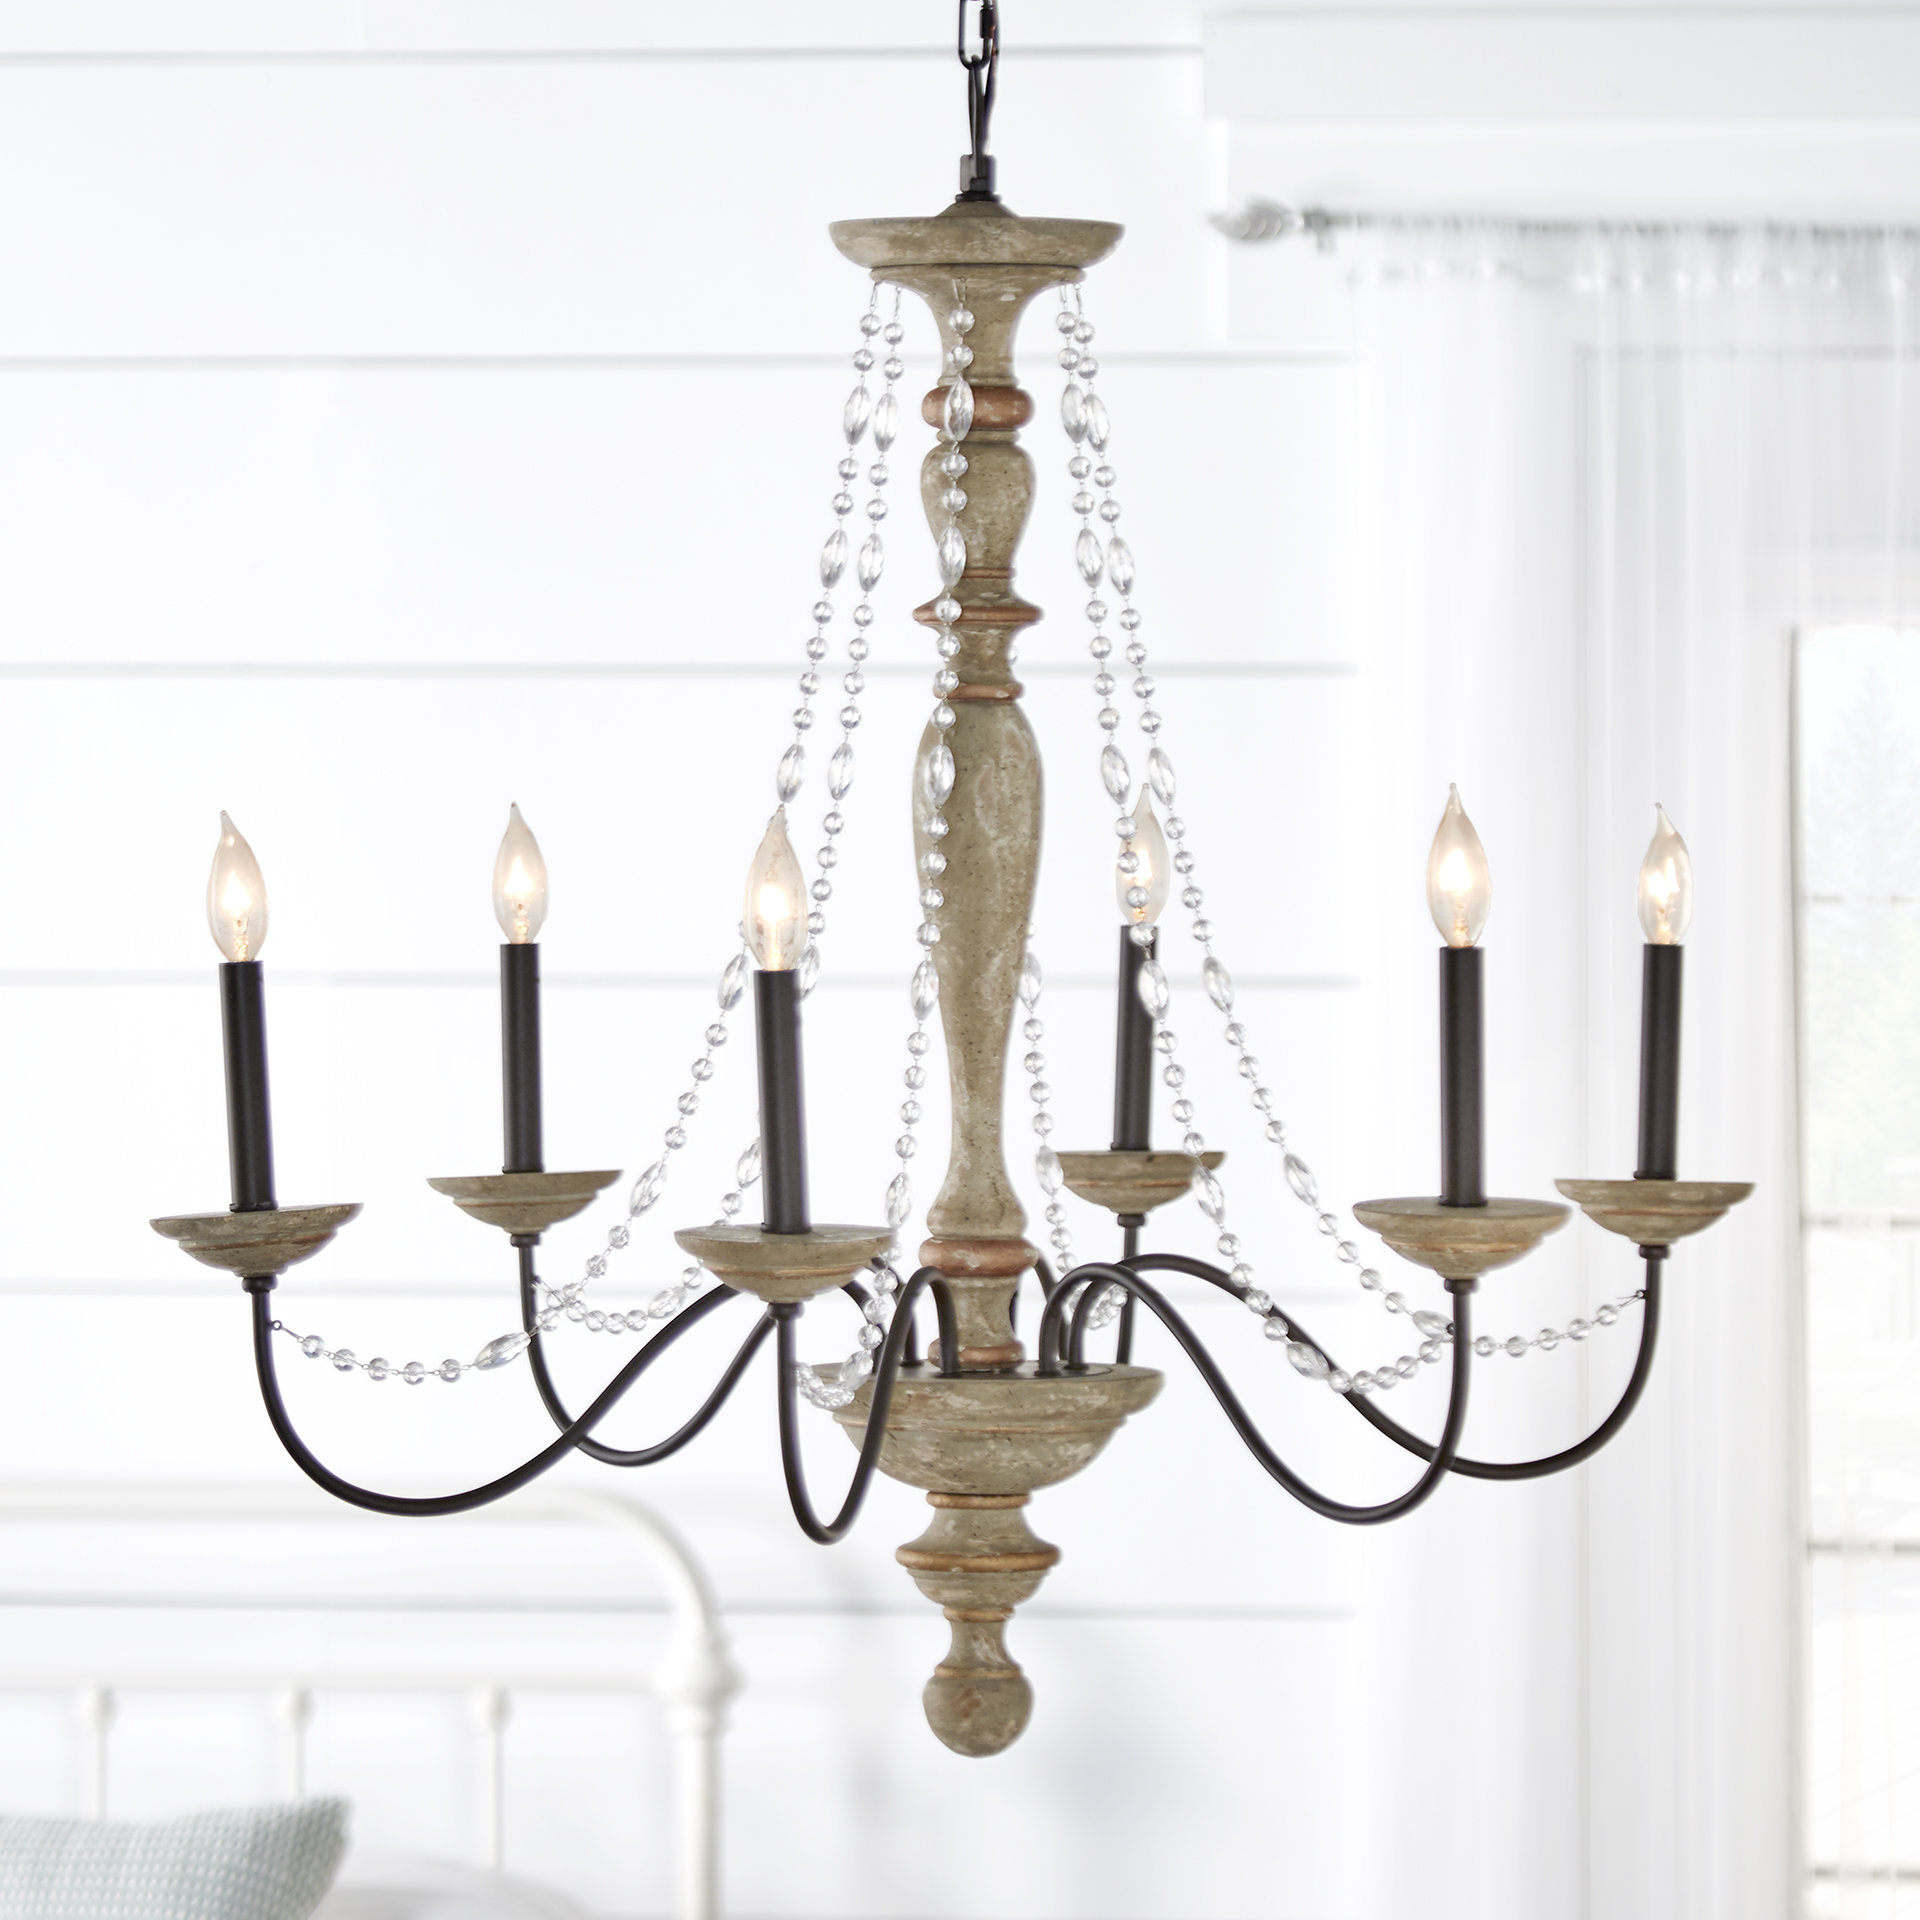 Three Posts Brennon 6 Light Candle Style Chandelier Pertaining To Bennington 6 Light Candle Style Chandeliers (View 9 of 30)